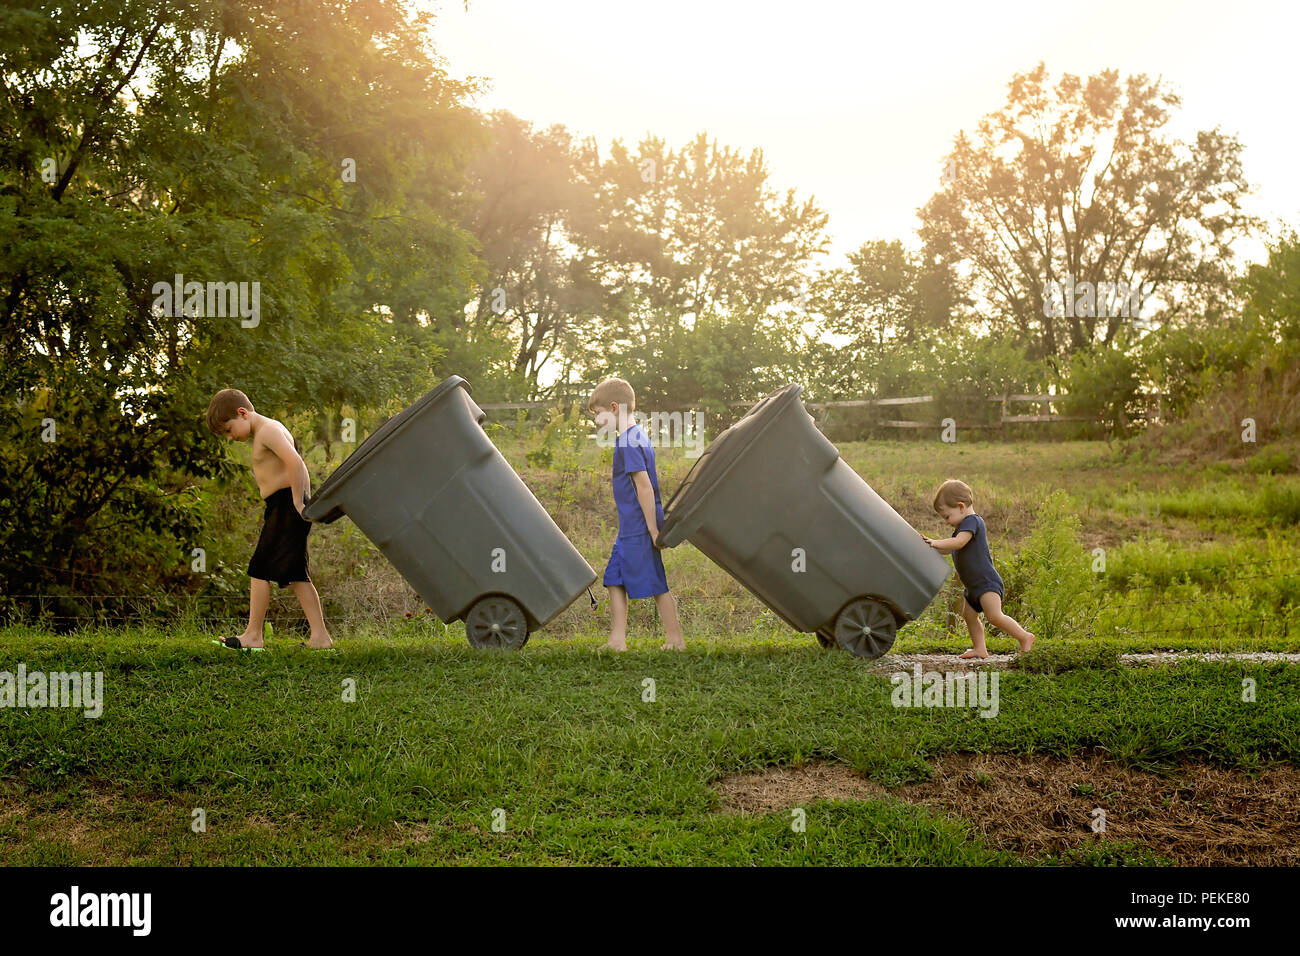 Three young boys taking out the trash bins - Stock Image